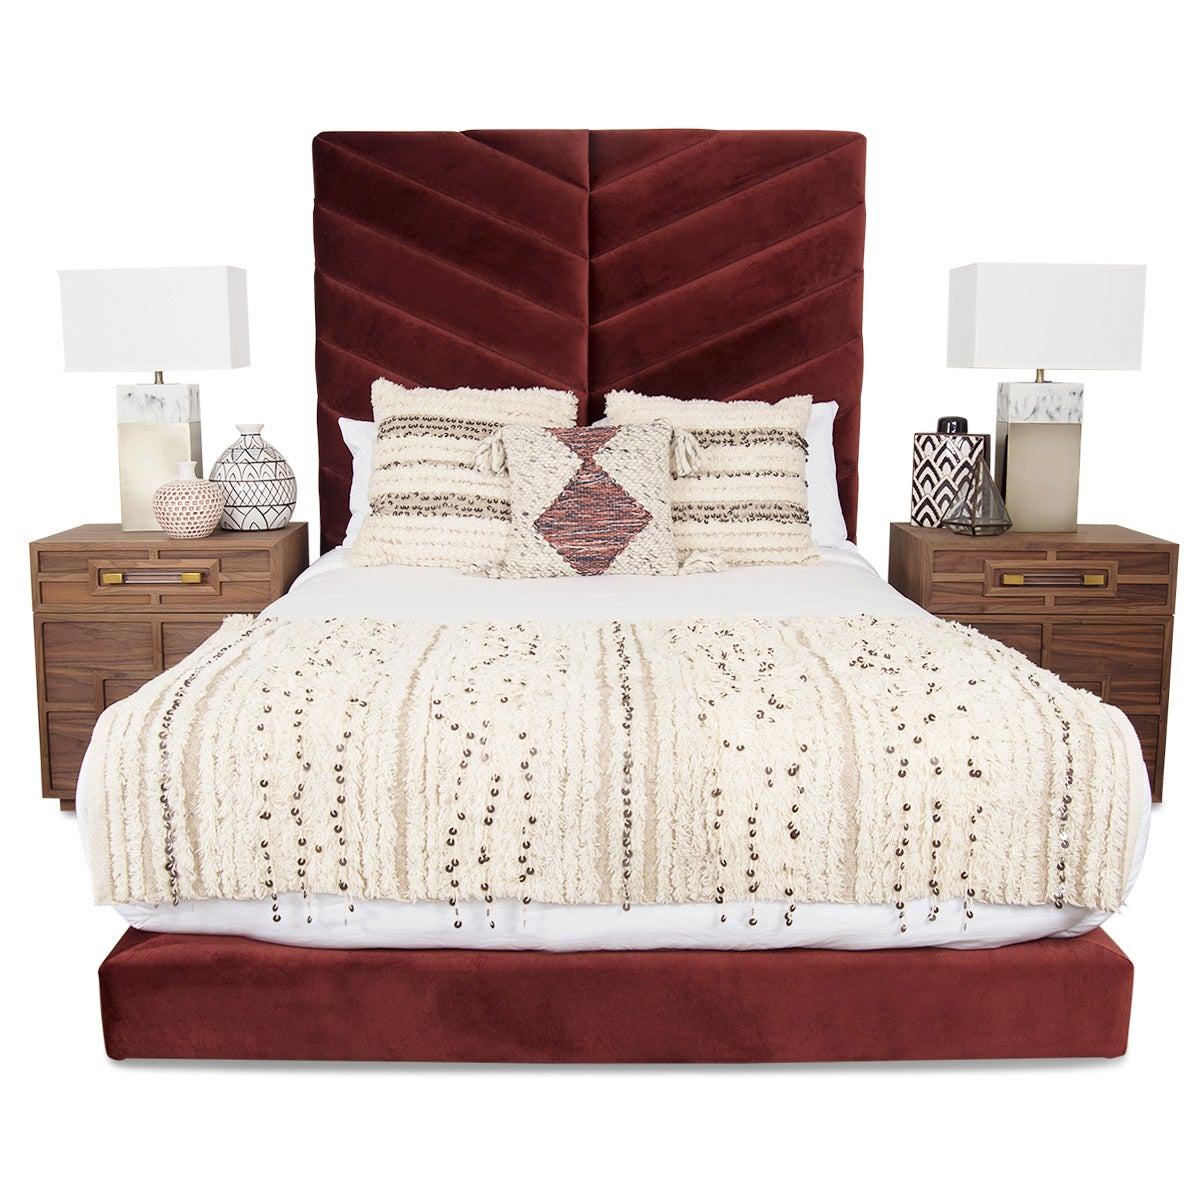 Amalfi Bed in Velvet - ModShop1.com